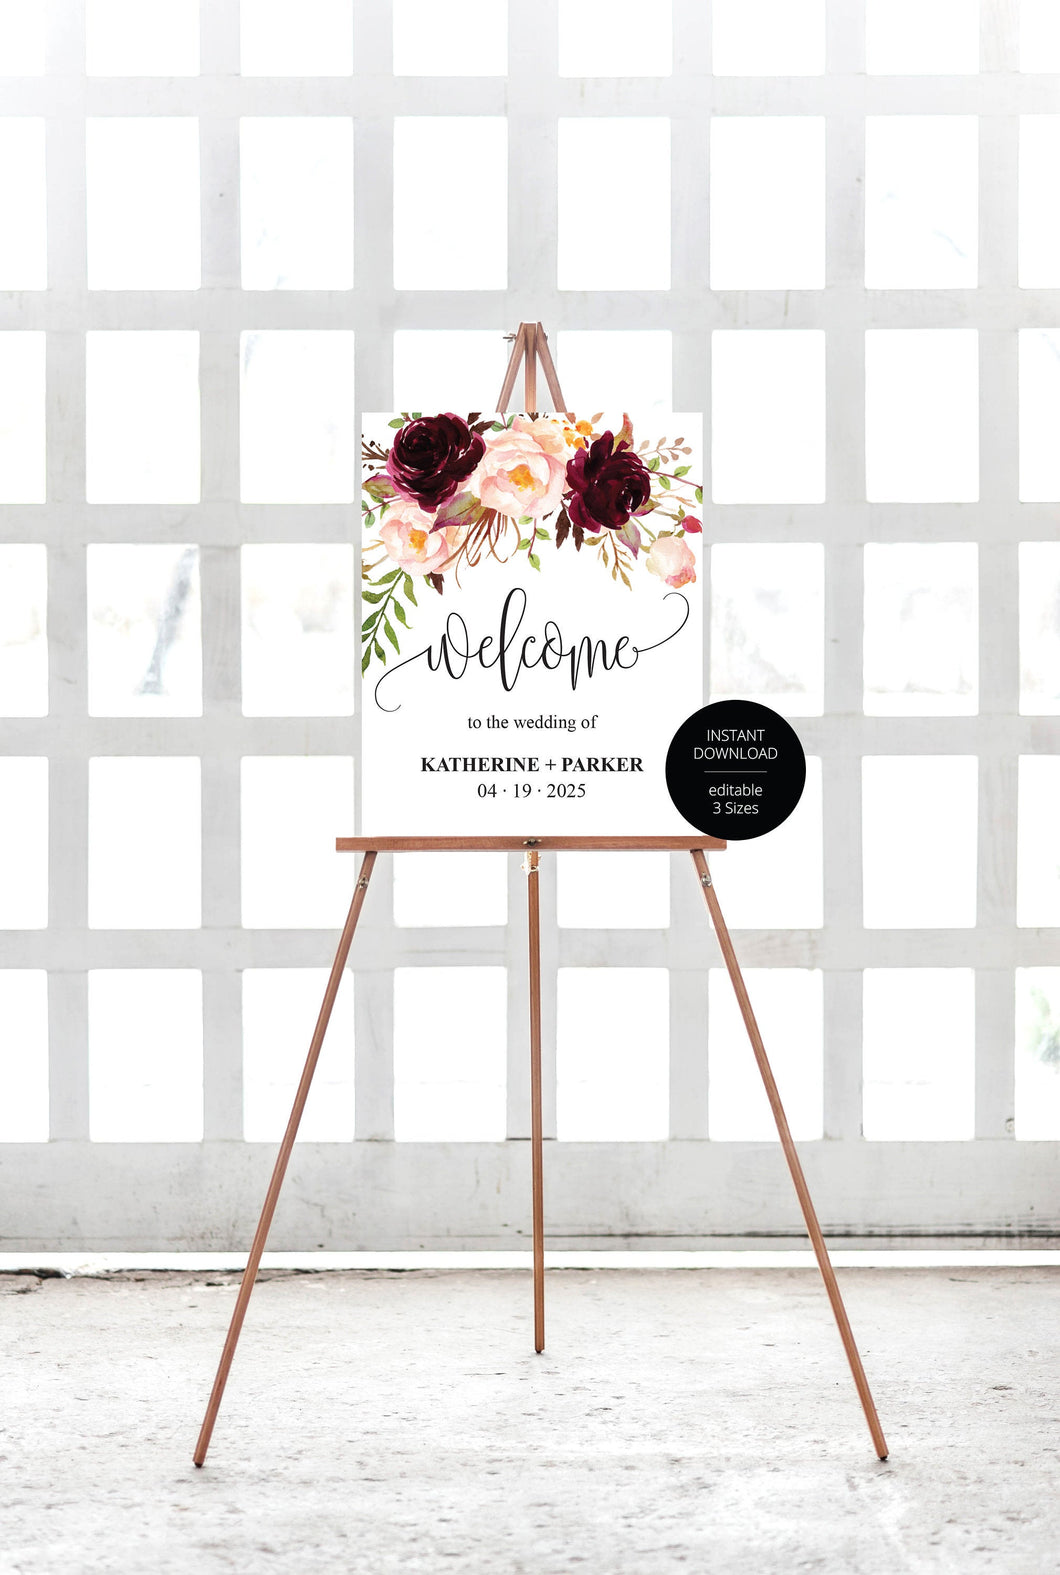 Printable Burgundy Floral Wedding Welcome Sign Editable Template Instant Download -KATHERINE